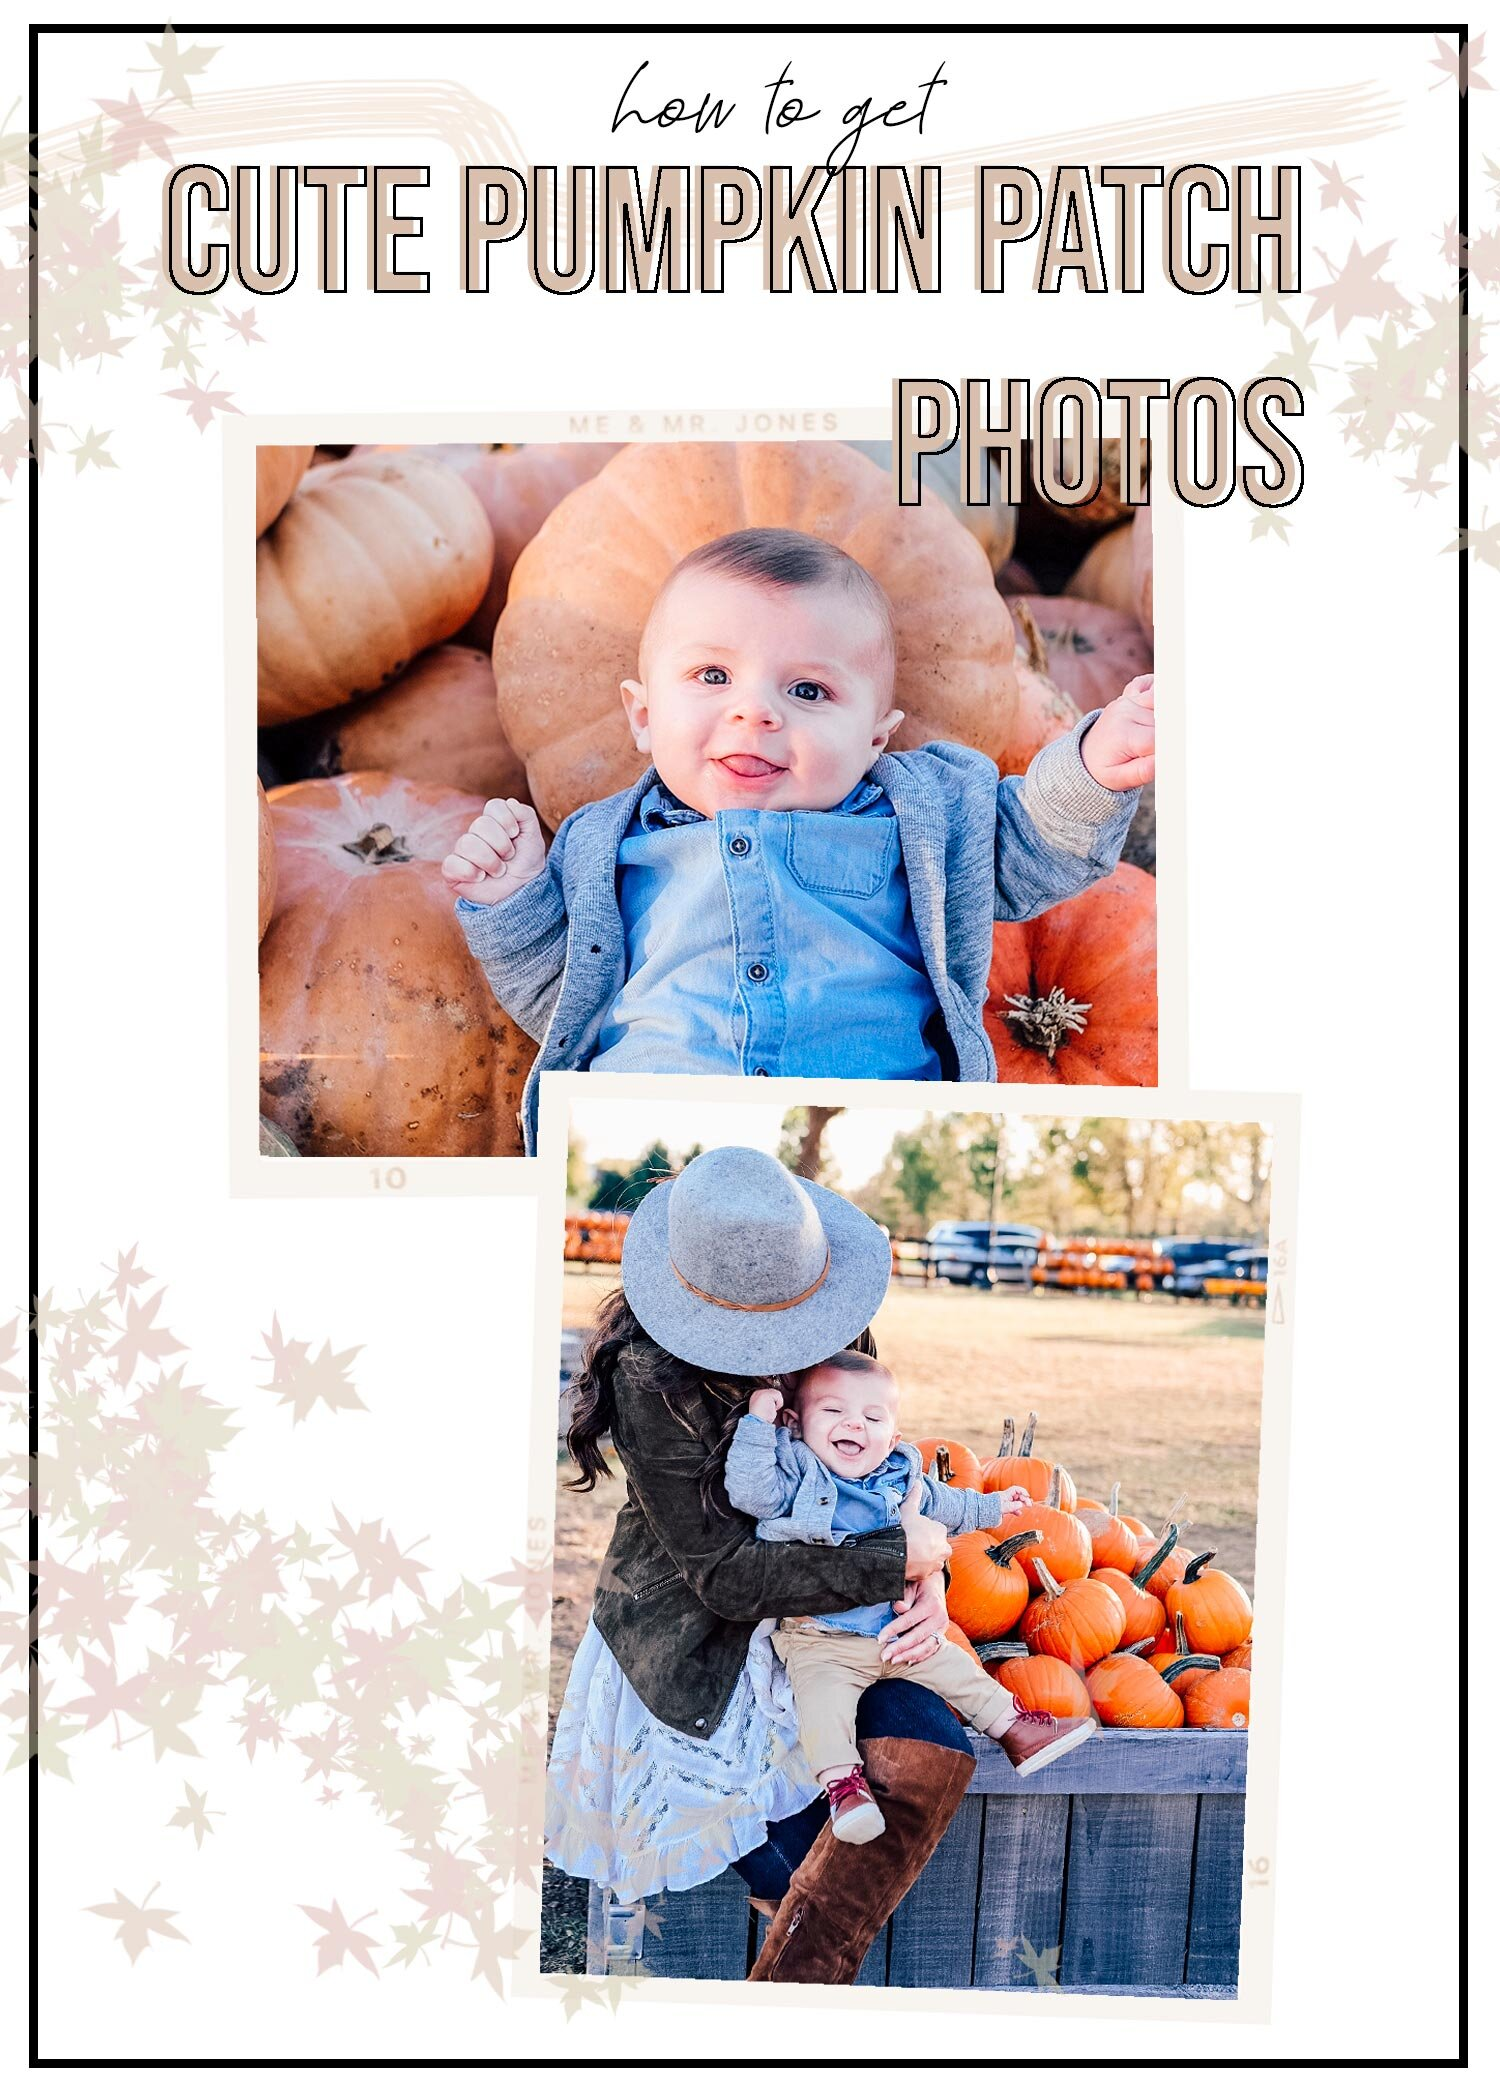 How to get cute photos at the pumpkin patch with newborns and toddlers.